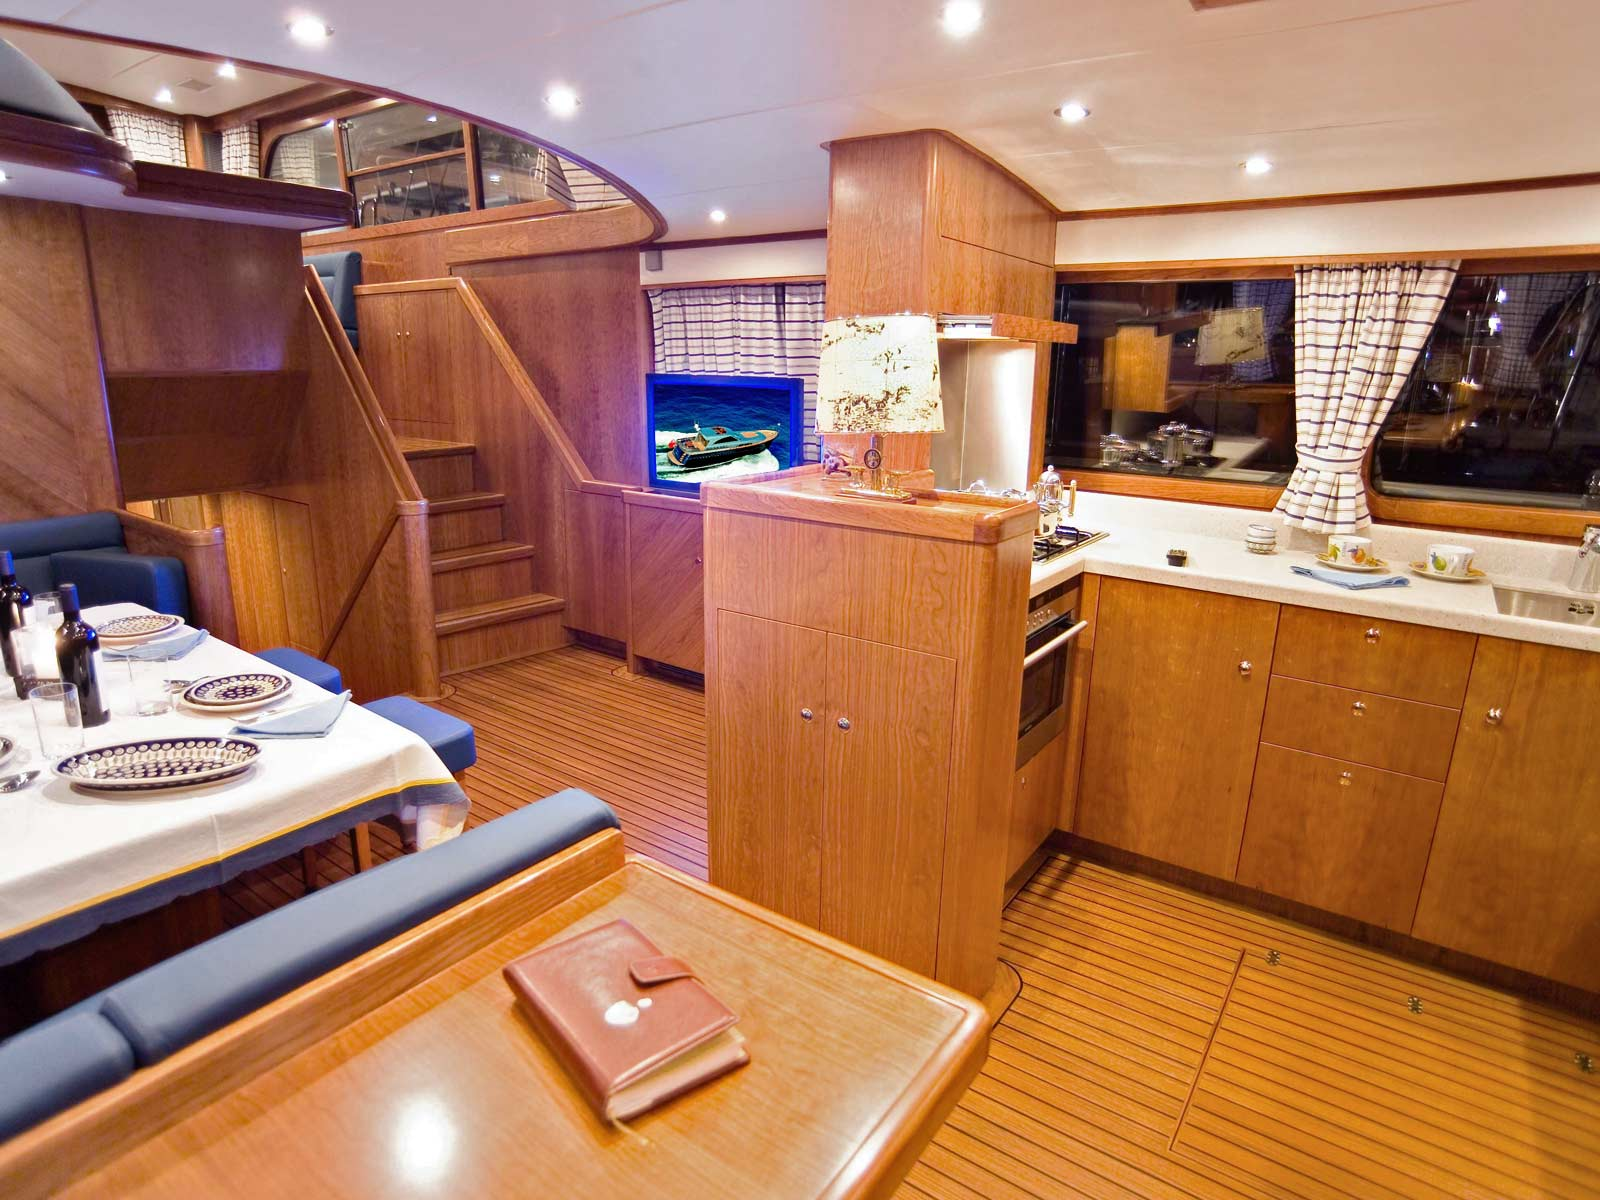 KittyvanderKamp_projects_Mulder63_Wheelhouse_09